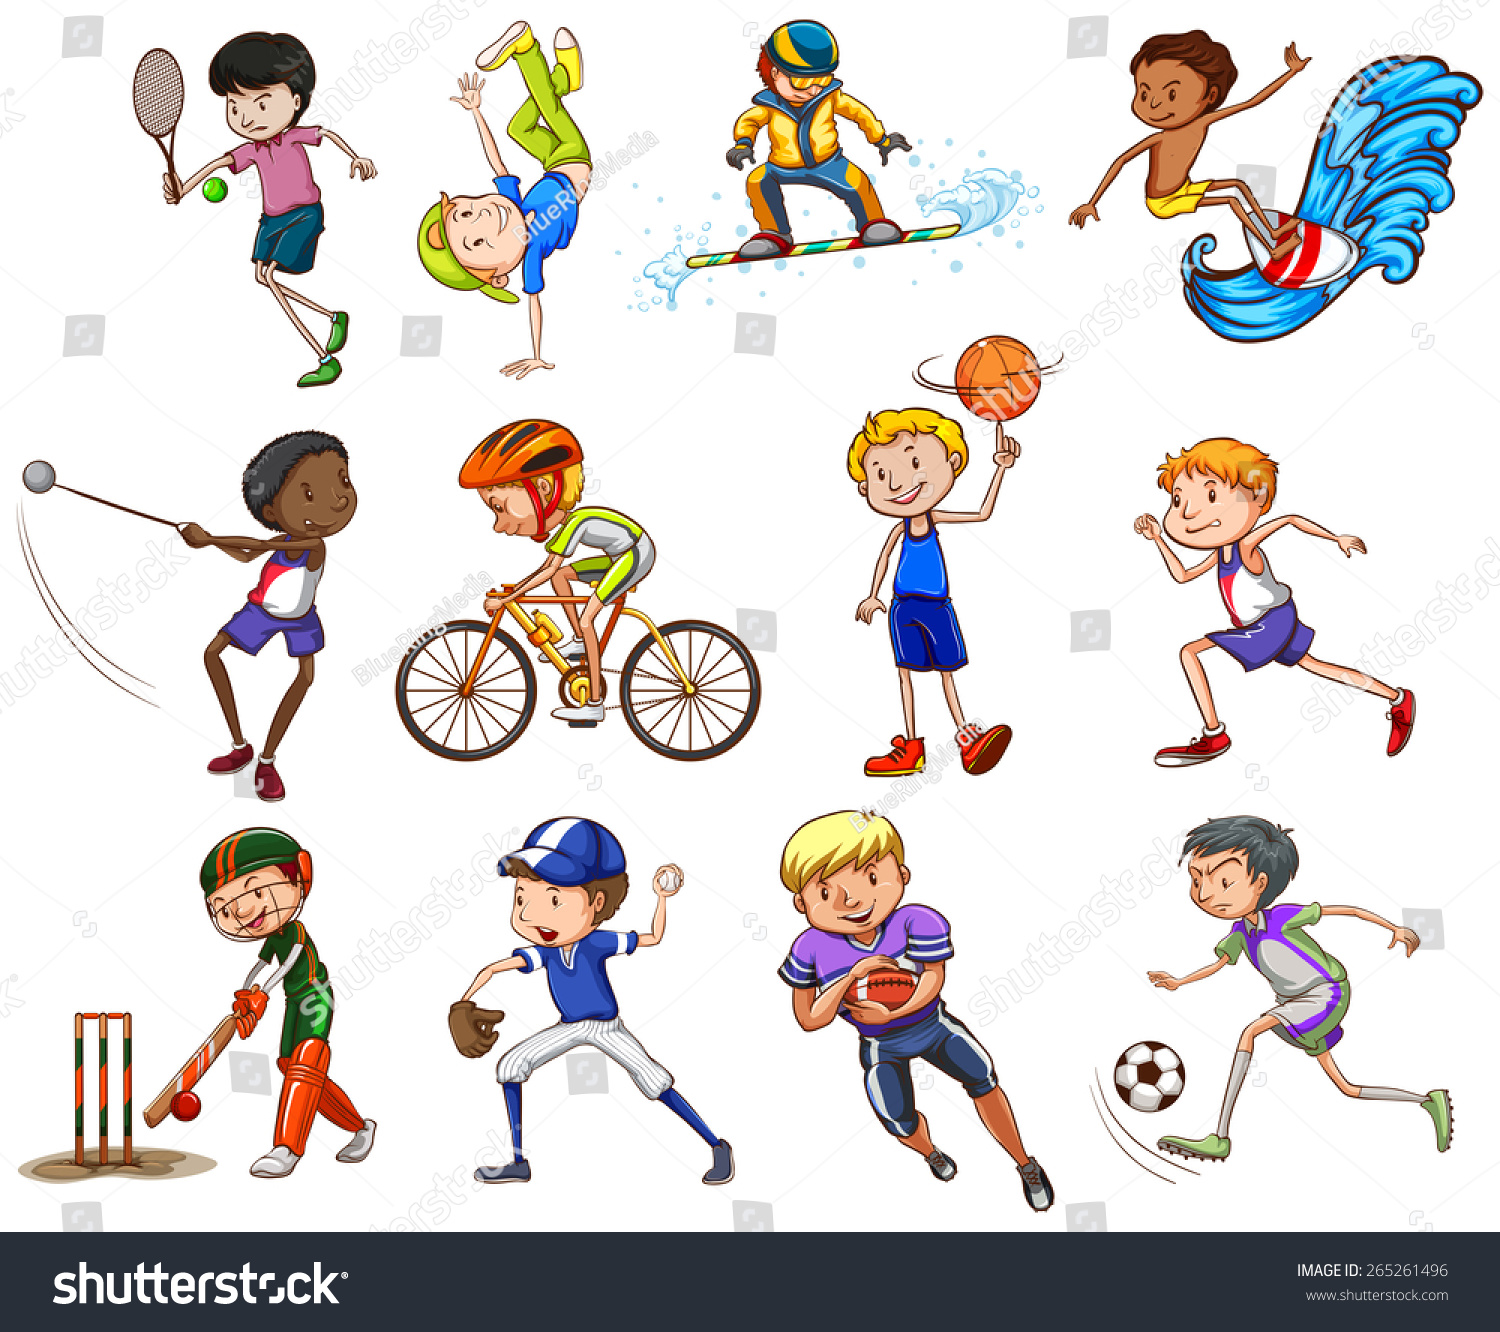 Stock Photography Doodle Kids Faces Pattern Black White Vector Illustration Image35749592 furthermore RunLenarun likewise Blue Gold Printable Word Puzzle For also Stock Vector Set Of Boys Playing Different Kinds Of Sports furthermore Free Vector Adventure Badges. on outdoor doodles